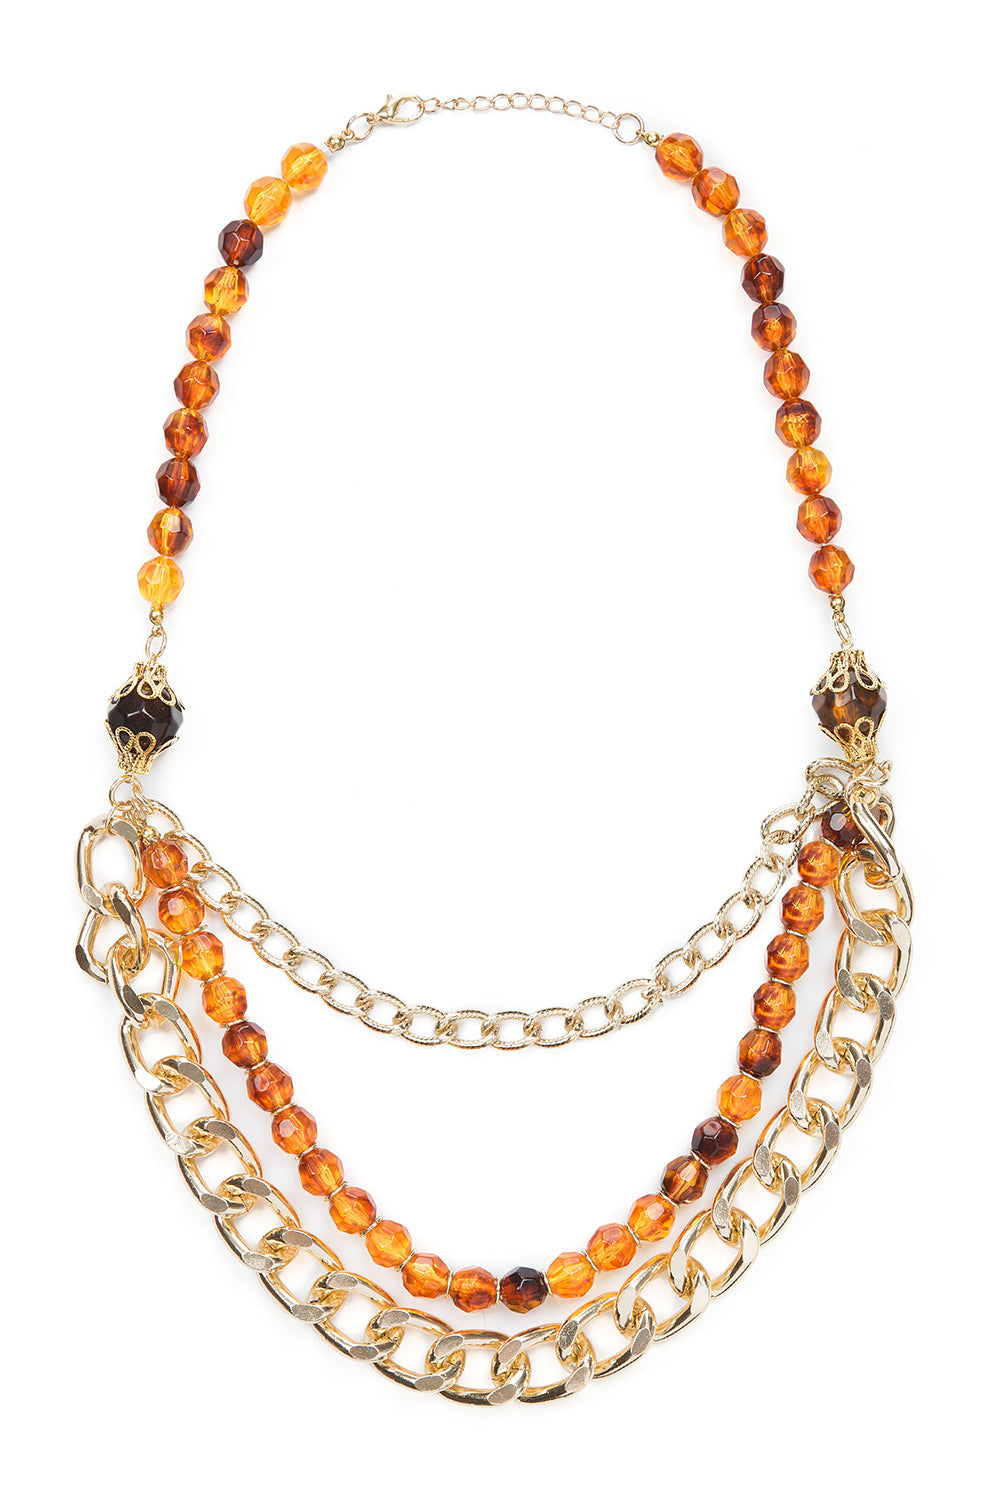 Type 3 Ample Amber Necklace